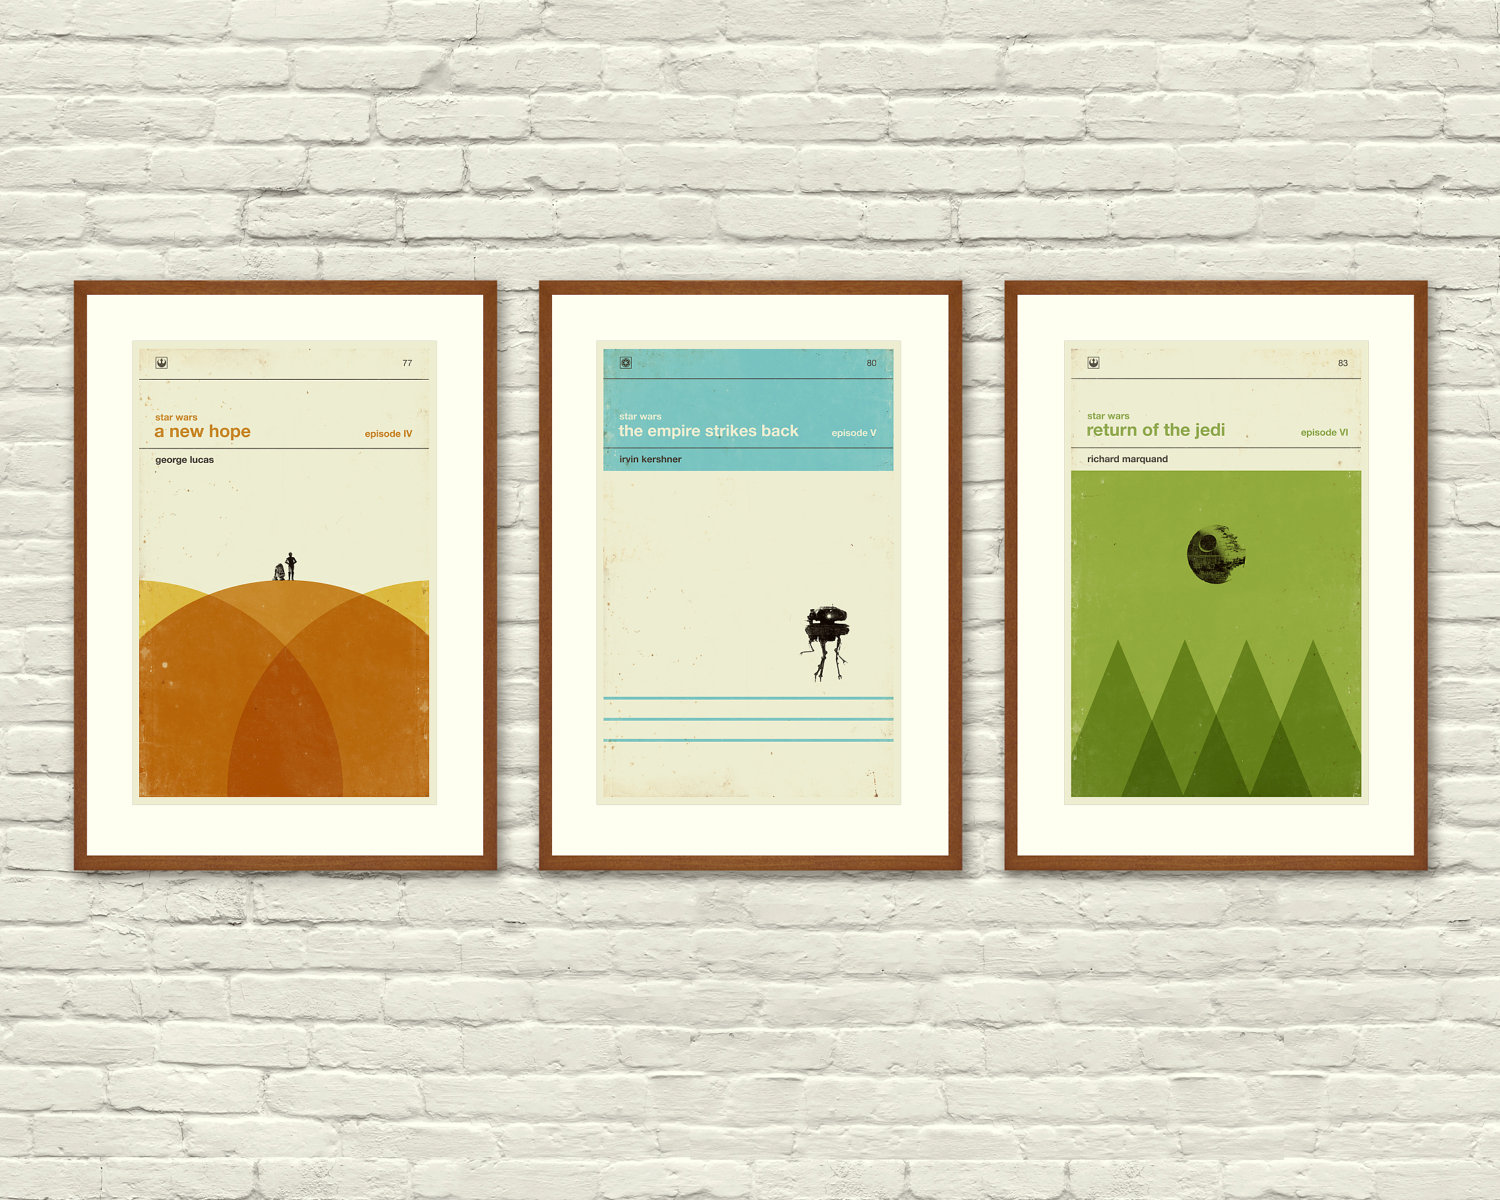 Star Wars Art Prints -£38.41 from EtsyFor a slightly different take on the Star Wars Trilogy why not try these minimal printsre-imaginingthe films aschildren'sbooks? These are almost stylish enough to not look nerdy at all. Almost.